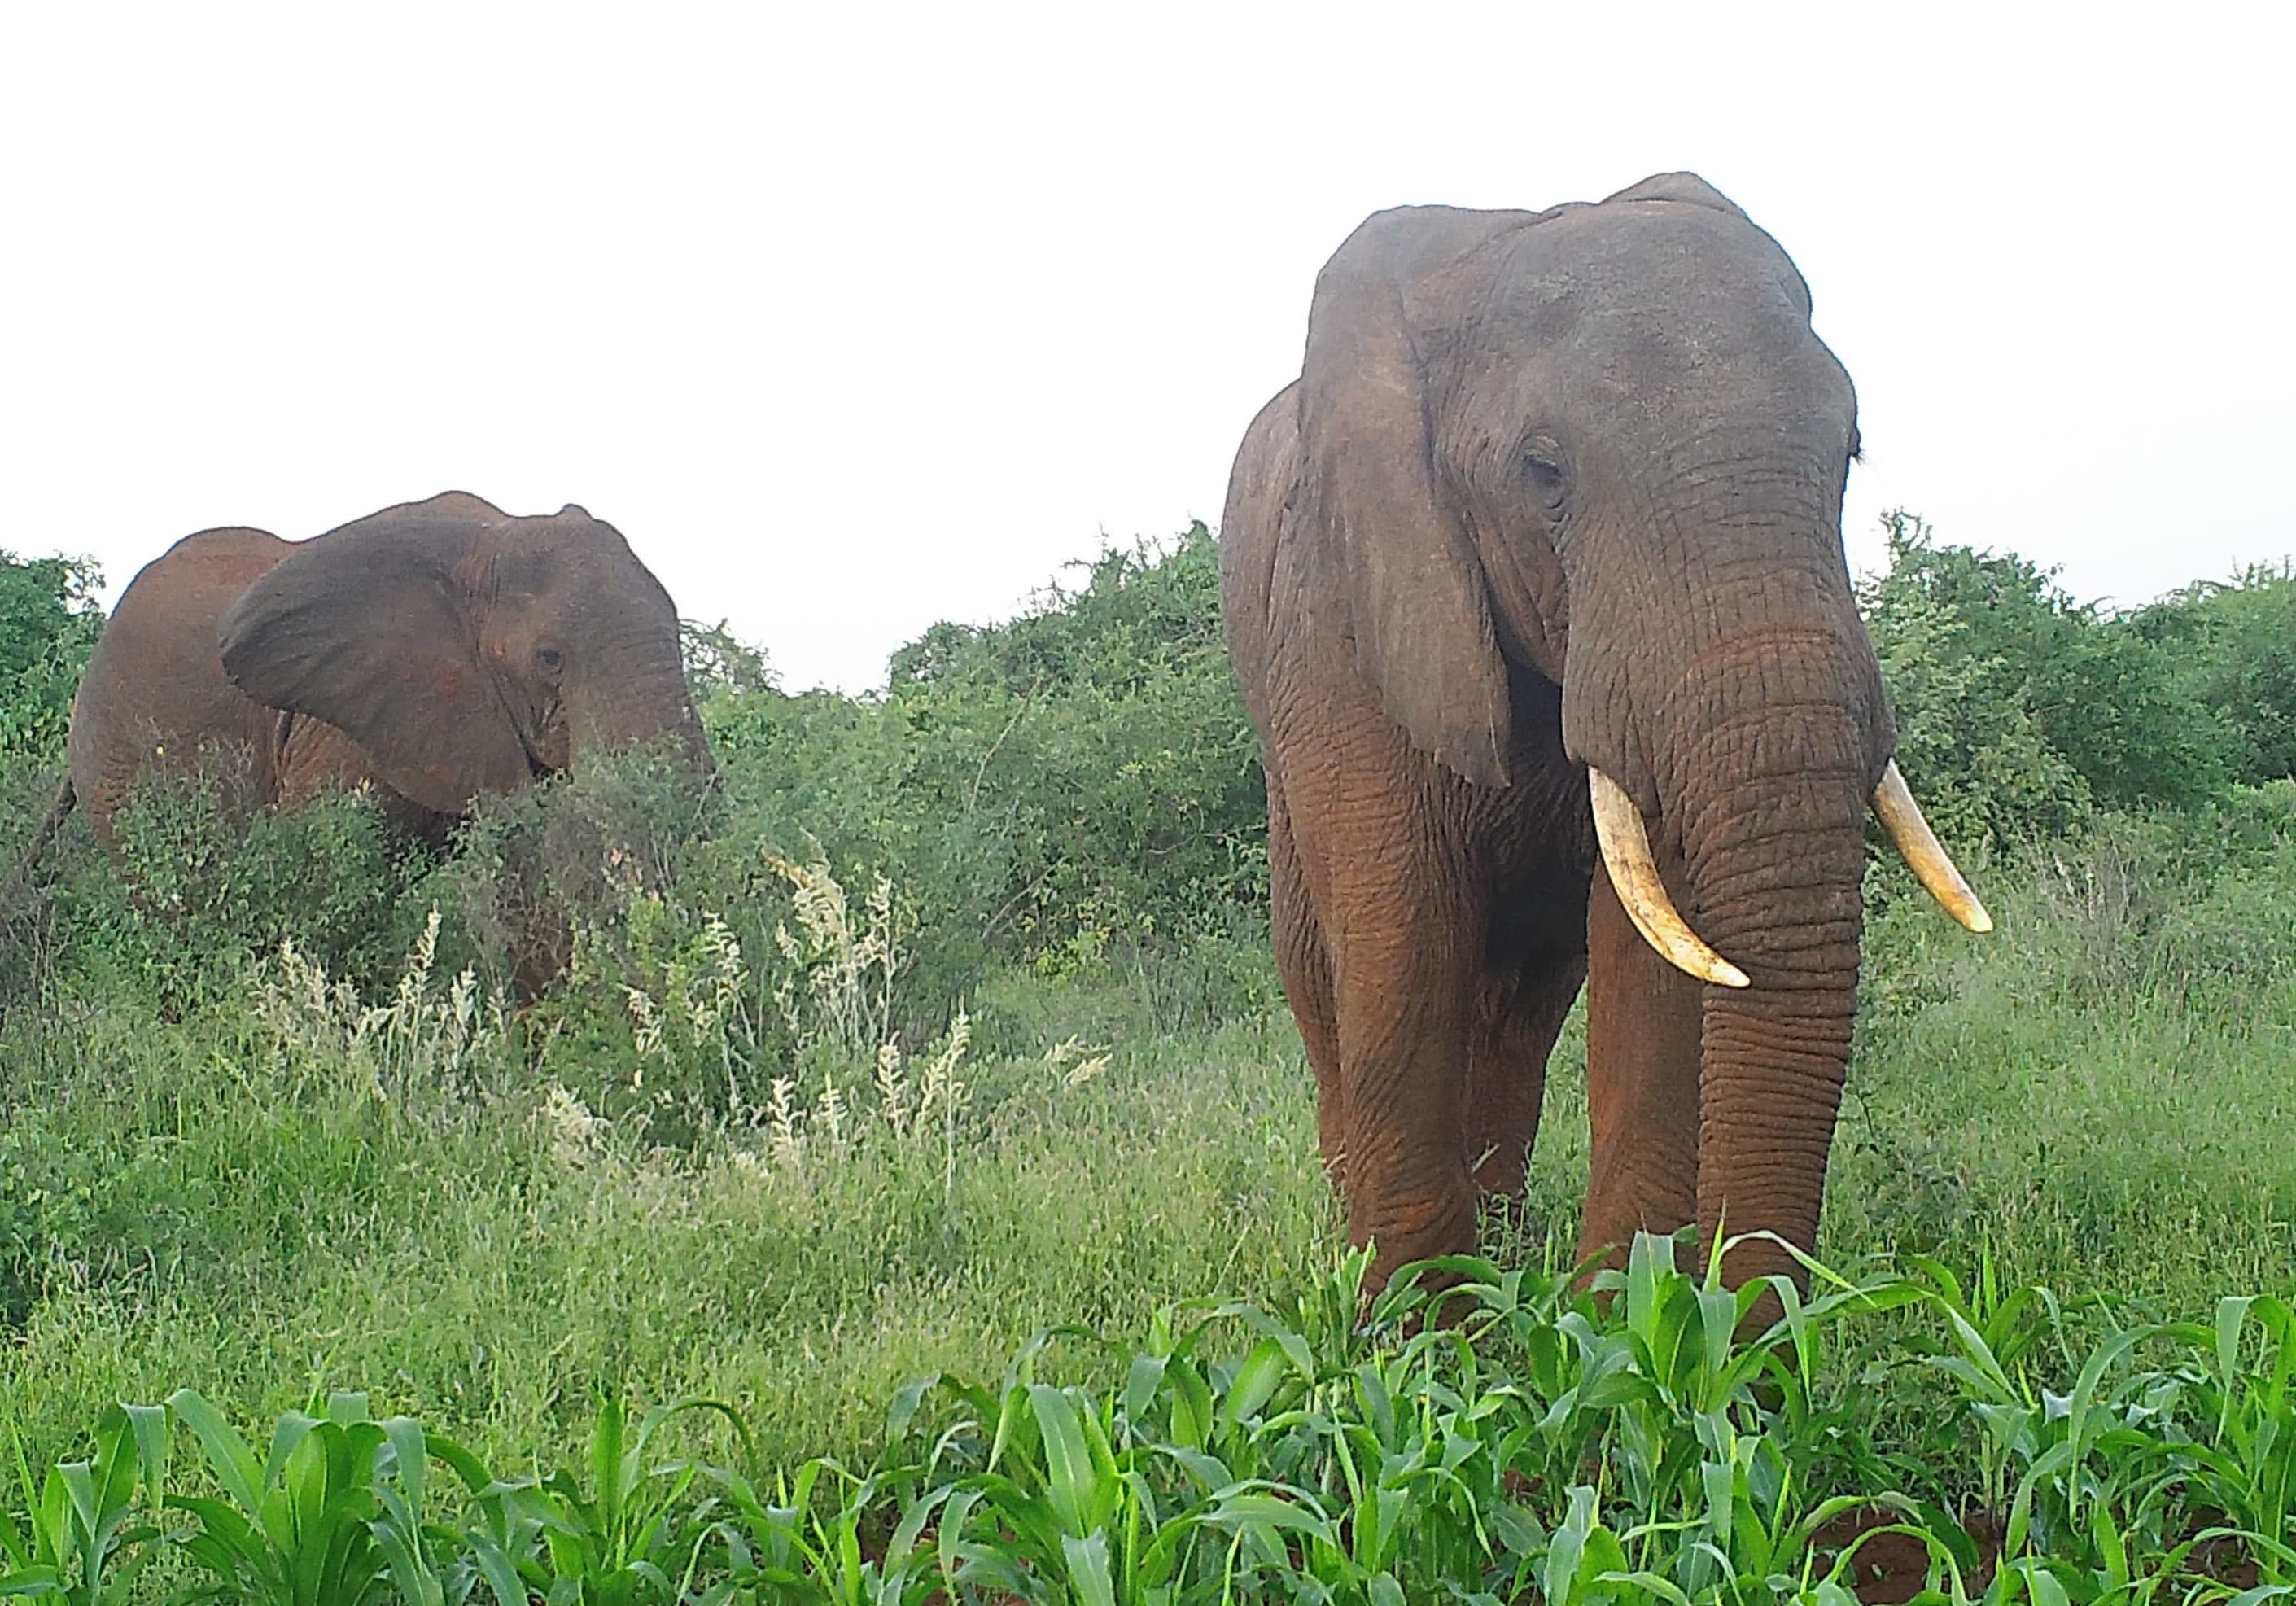 Elephants raiding crops in Kenya. Source: elephantsandbees.com.